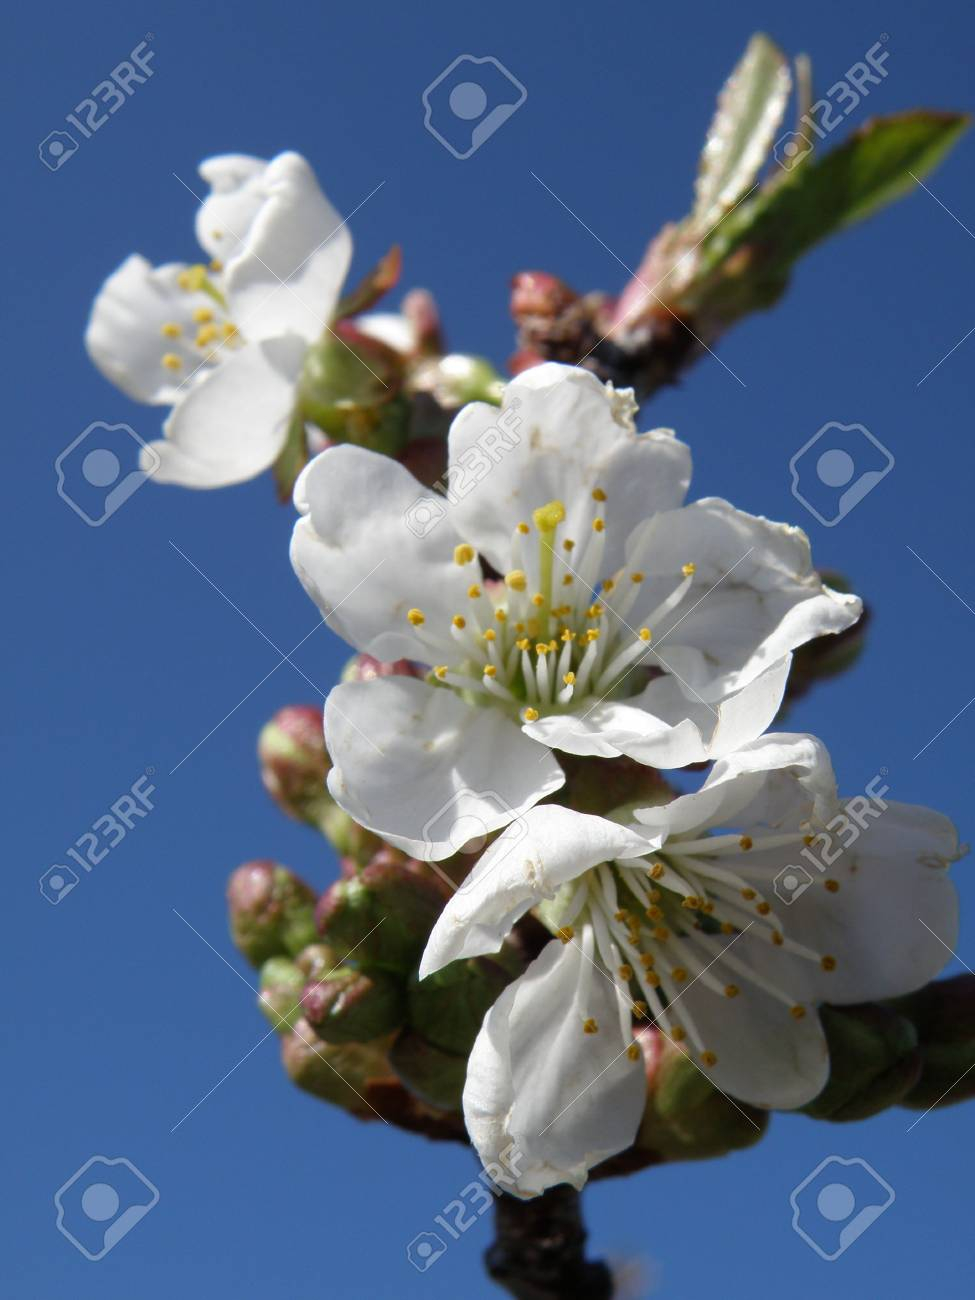 Sour cherry blossoms with deep blue background. Stock Photo - 4859176